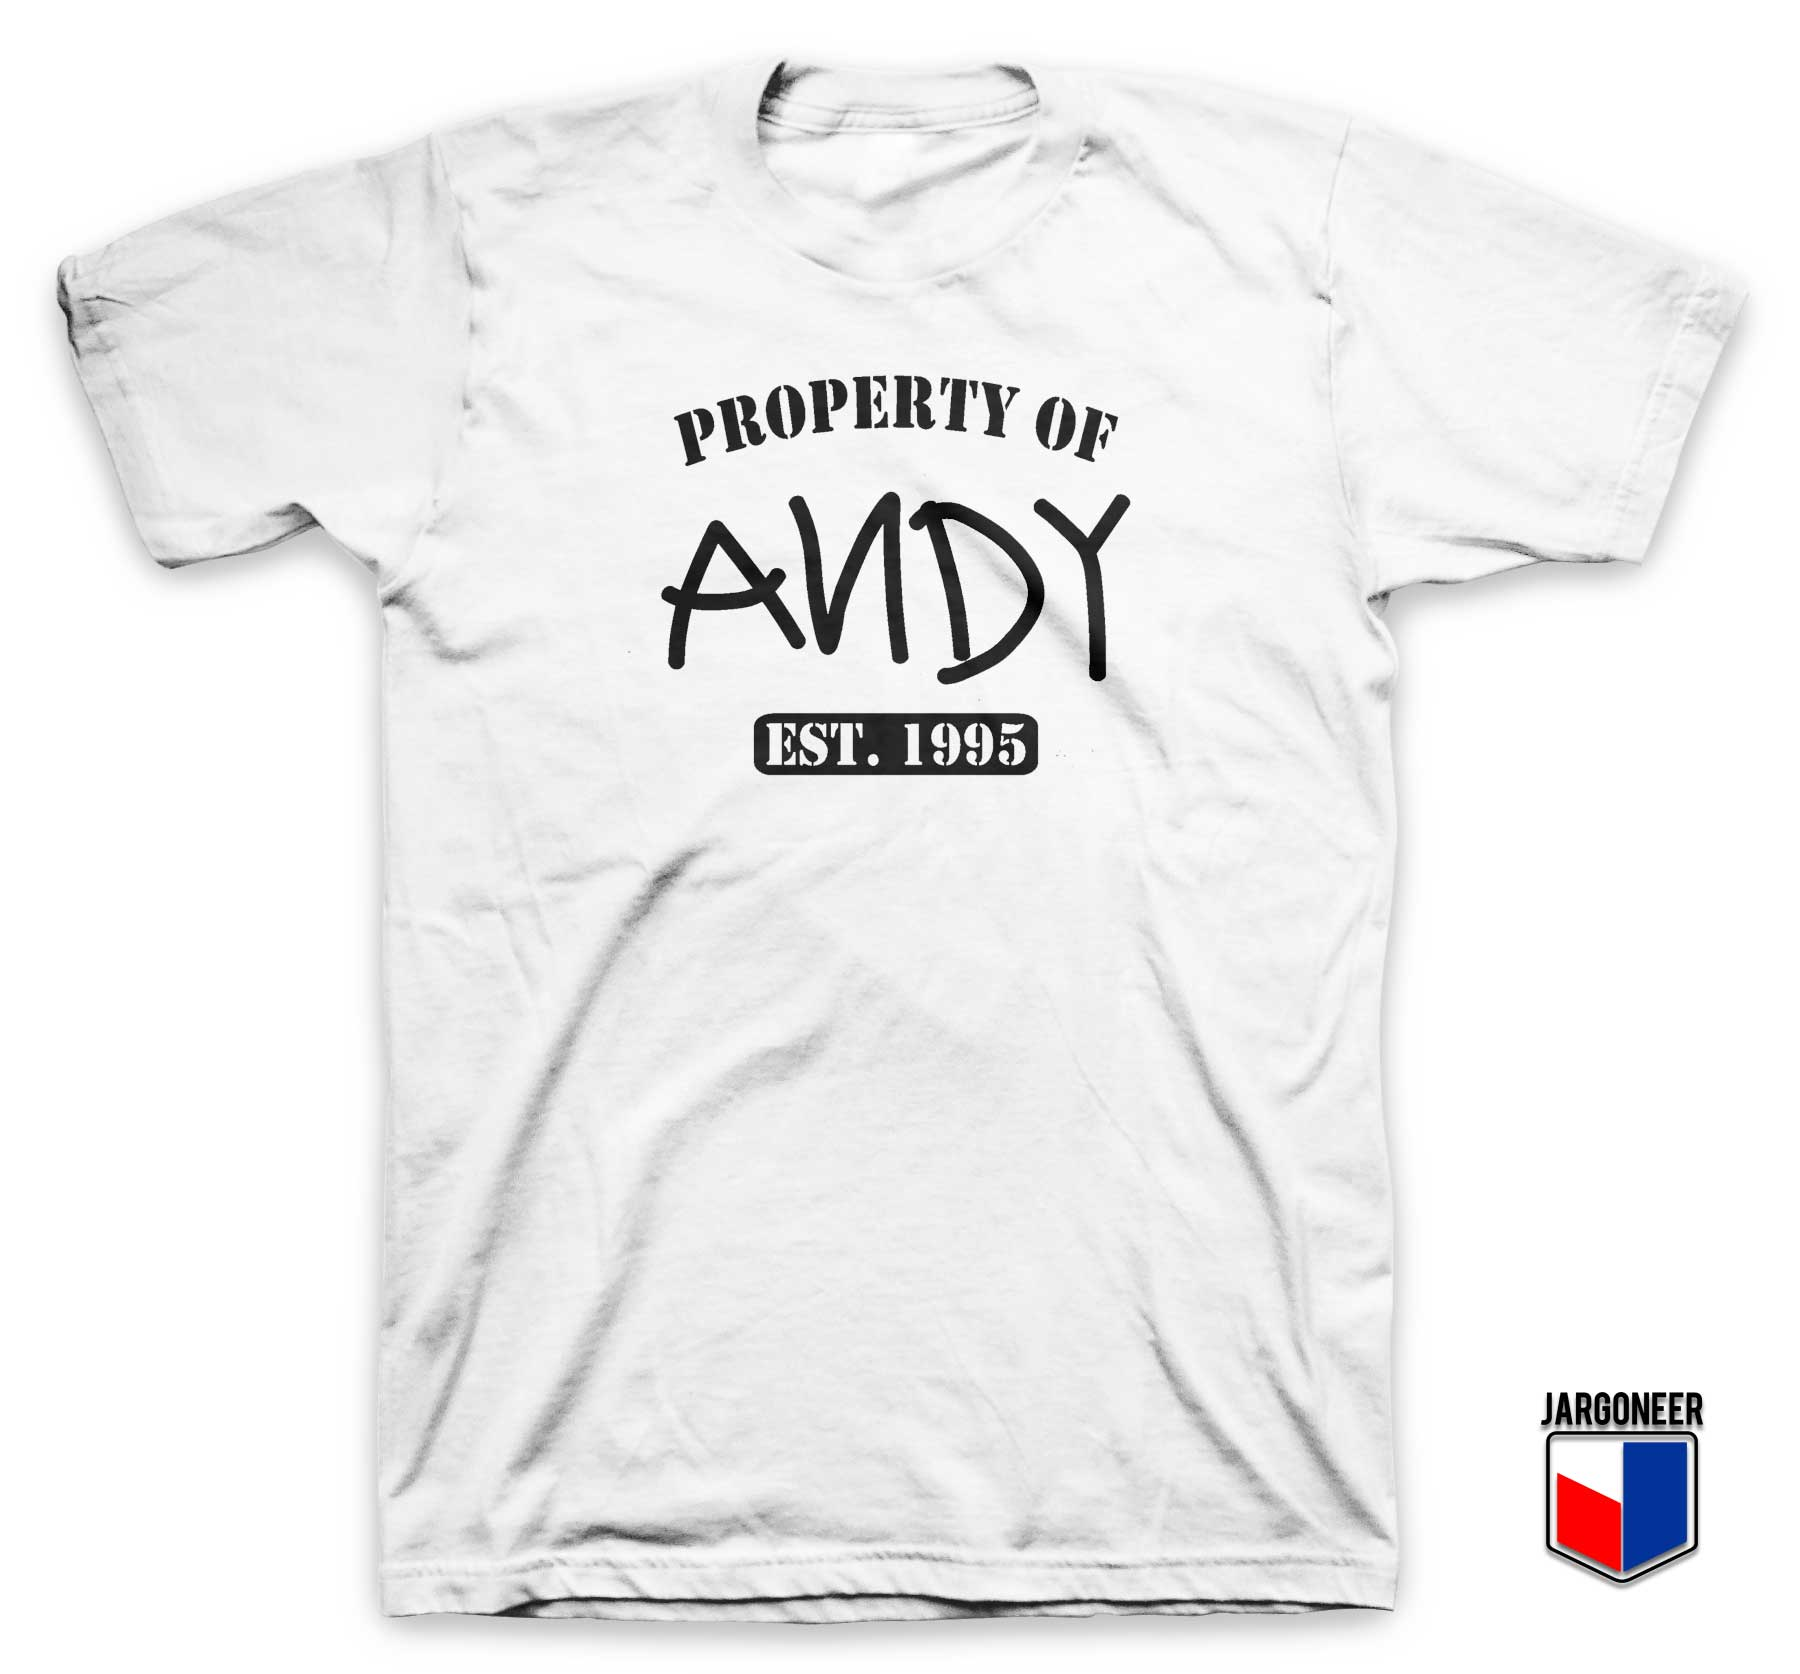 Property Of Andy